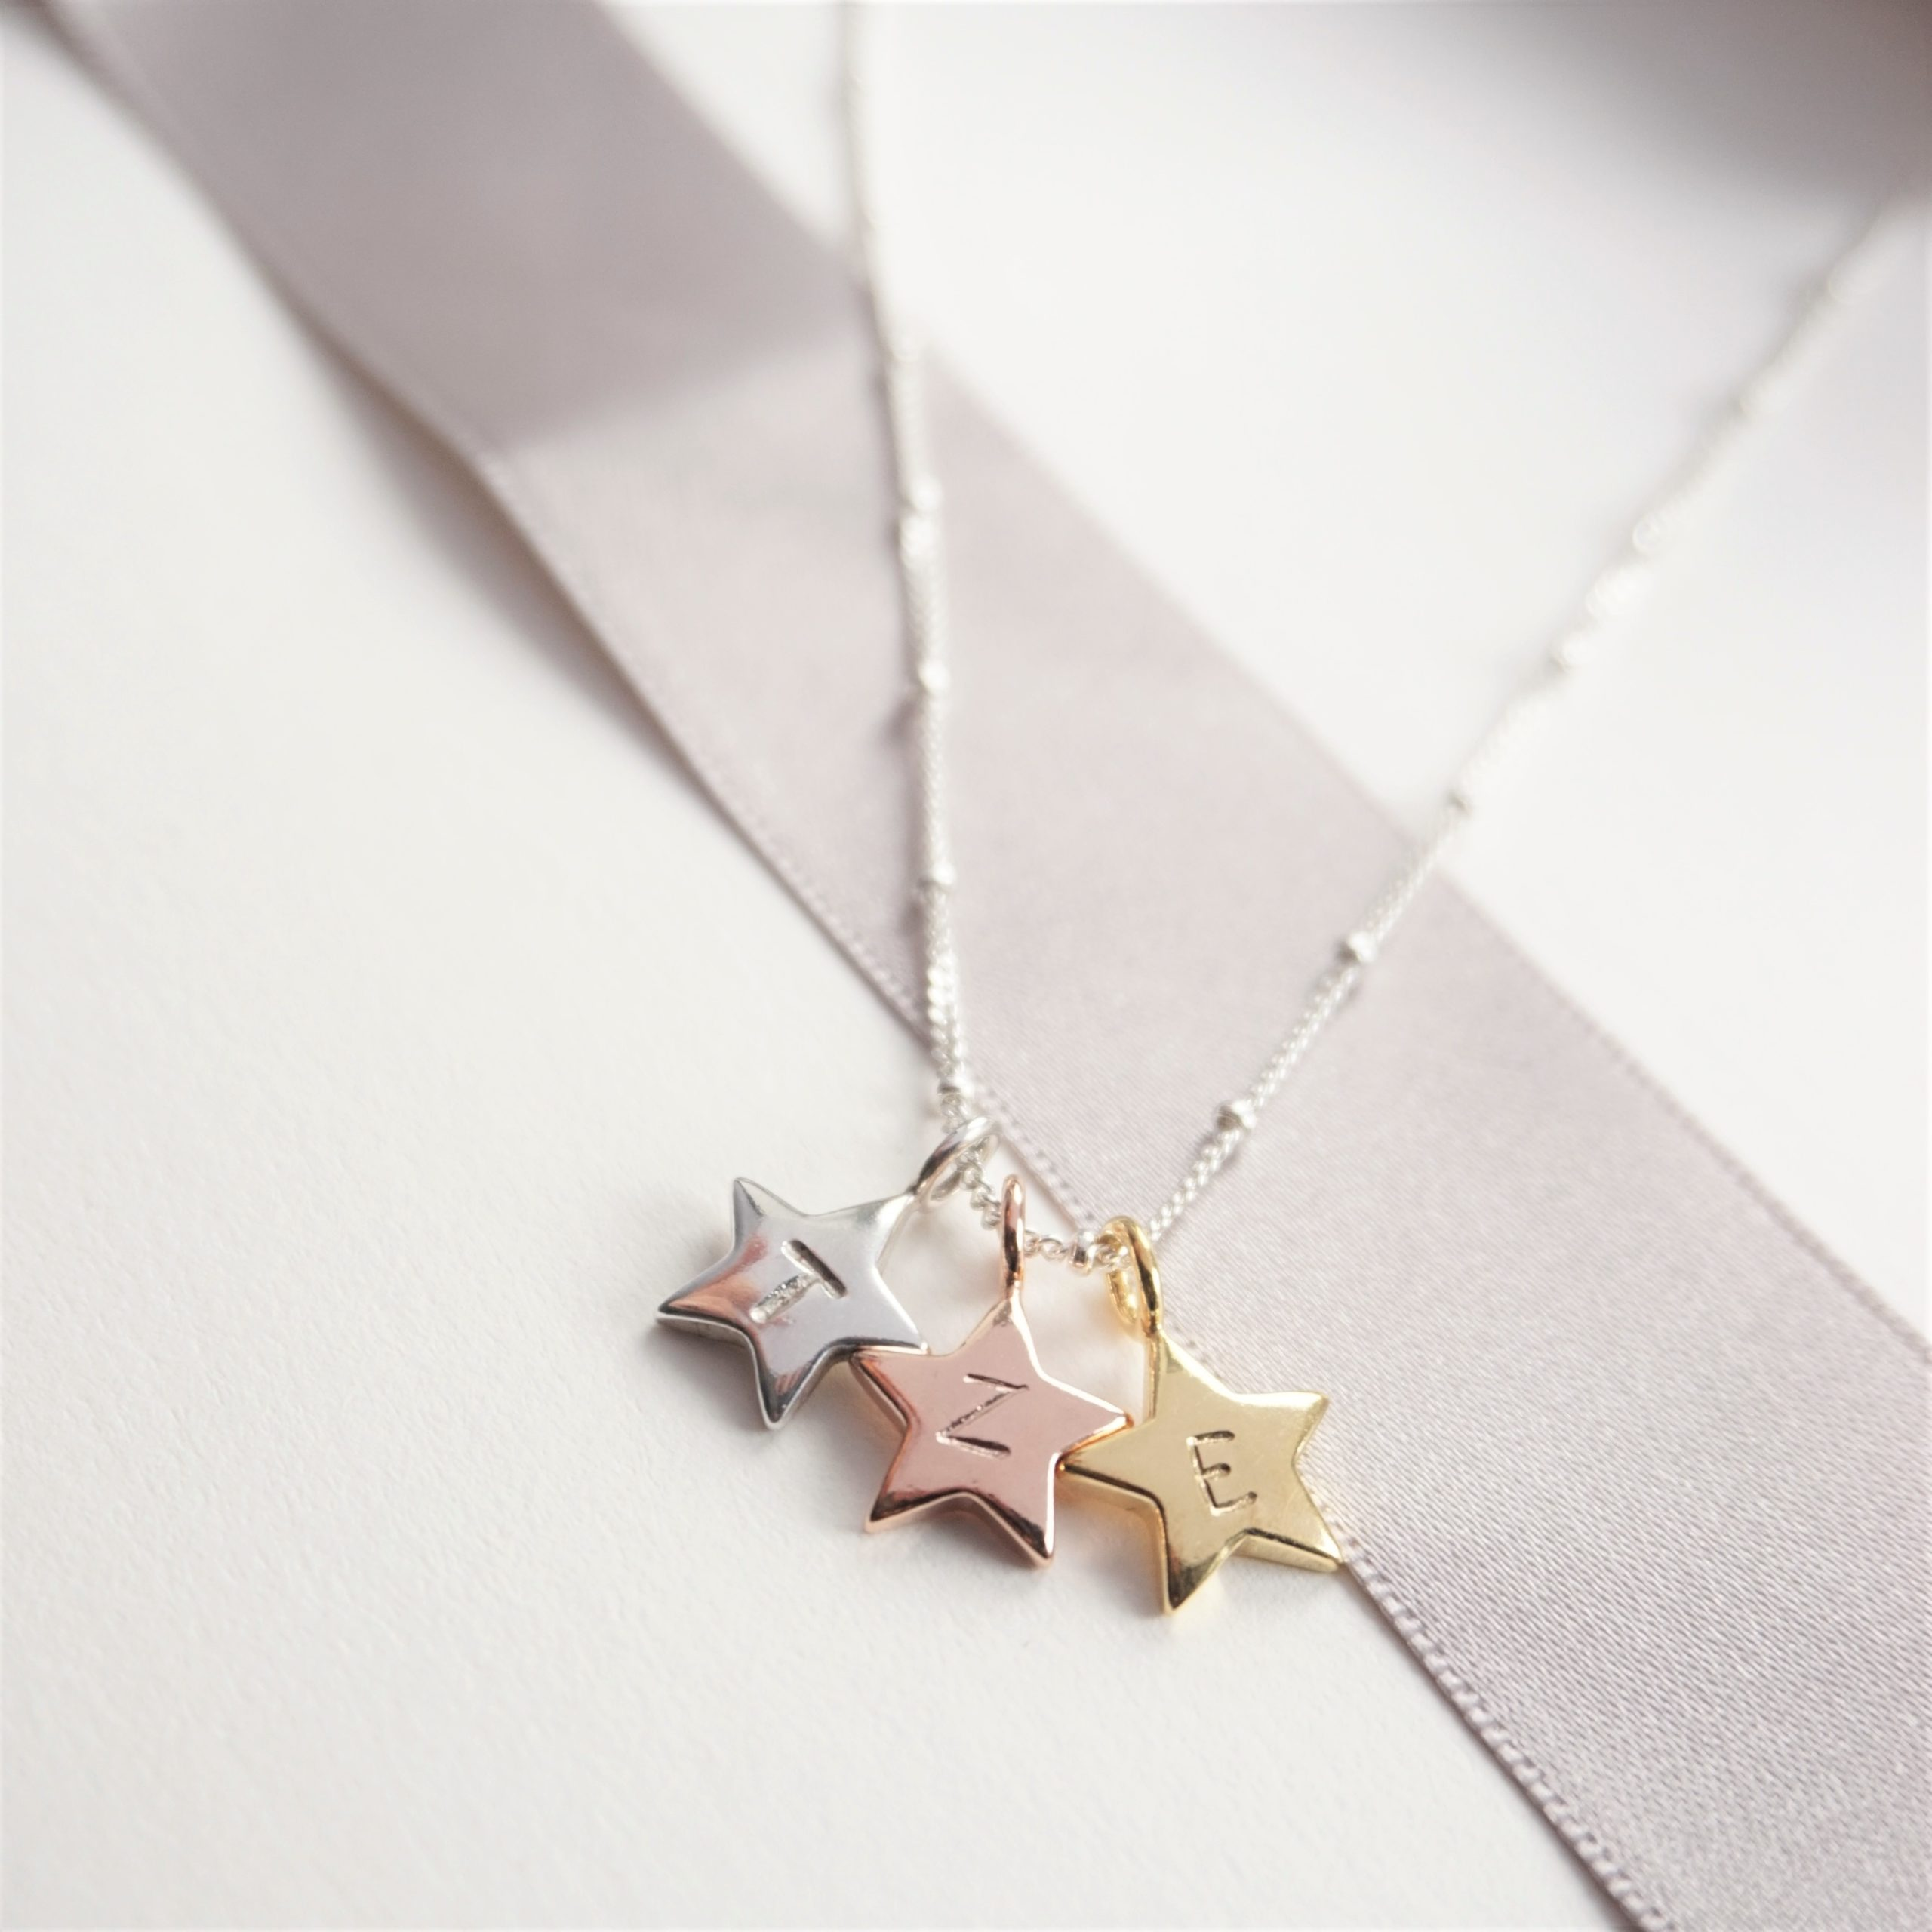 Sterling silver necklace with gold rose gold and silver initial stamped star charms